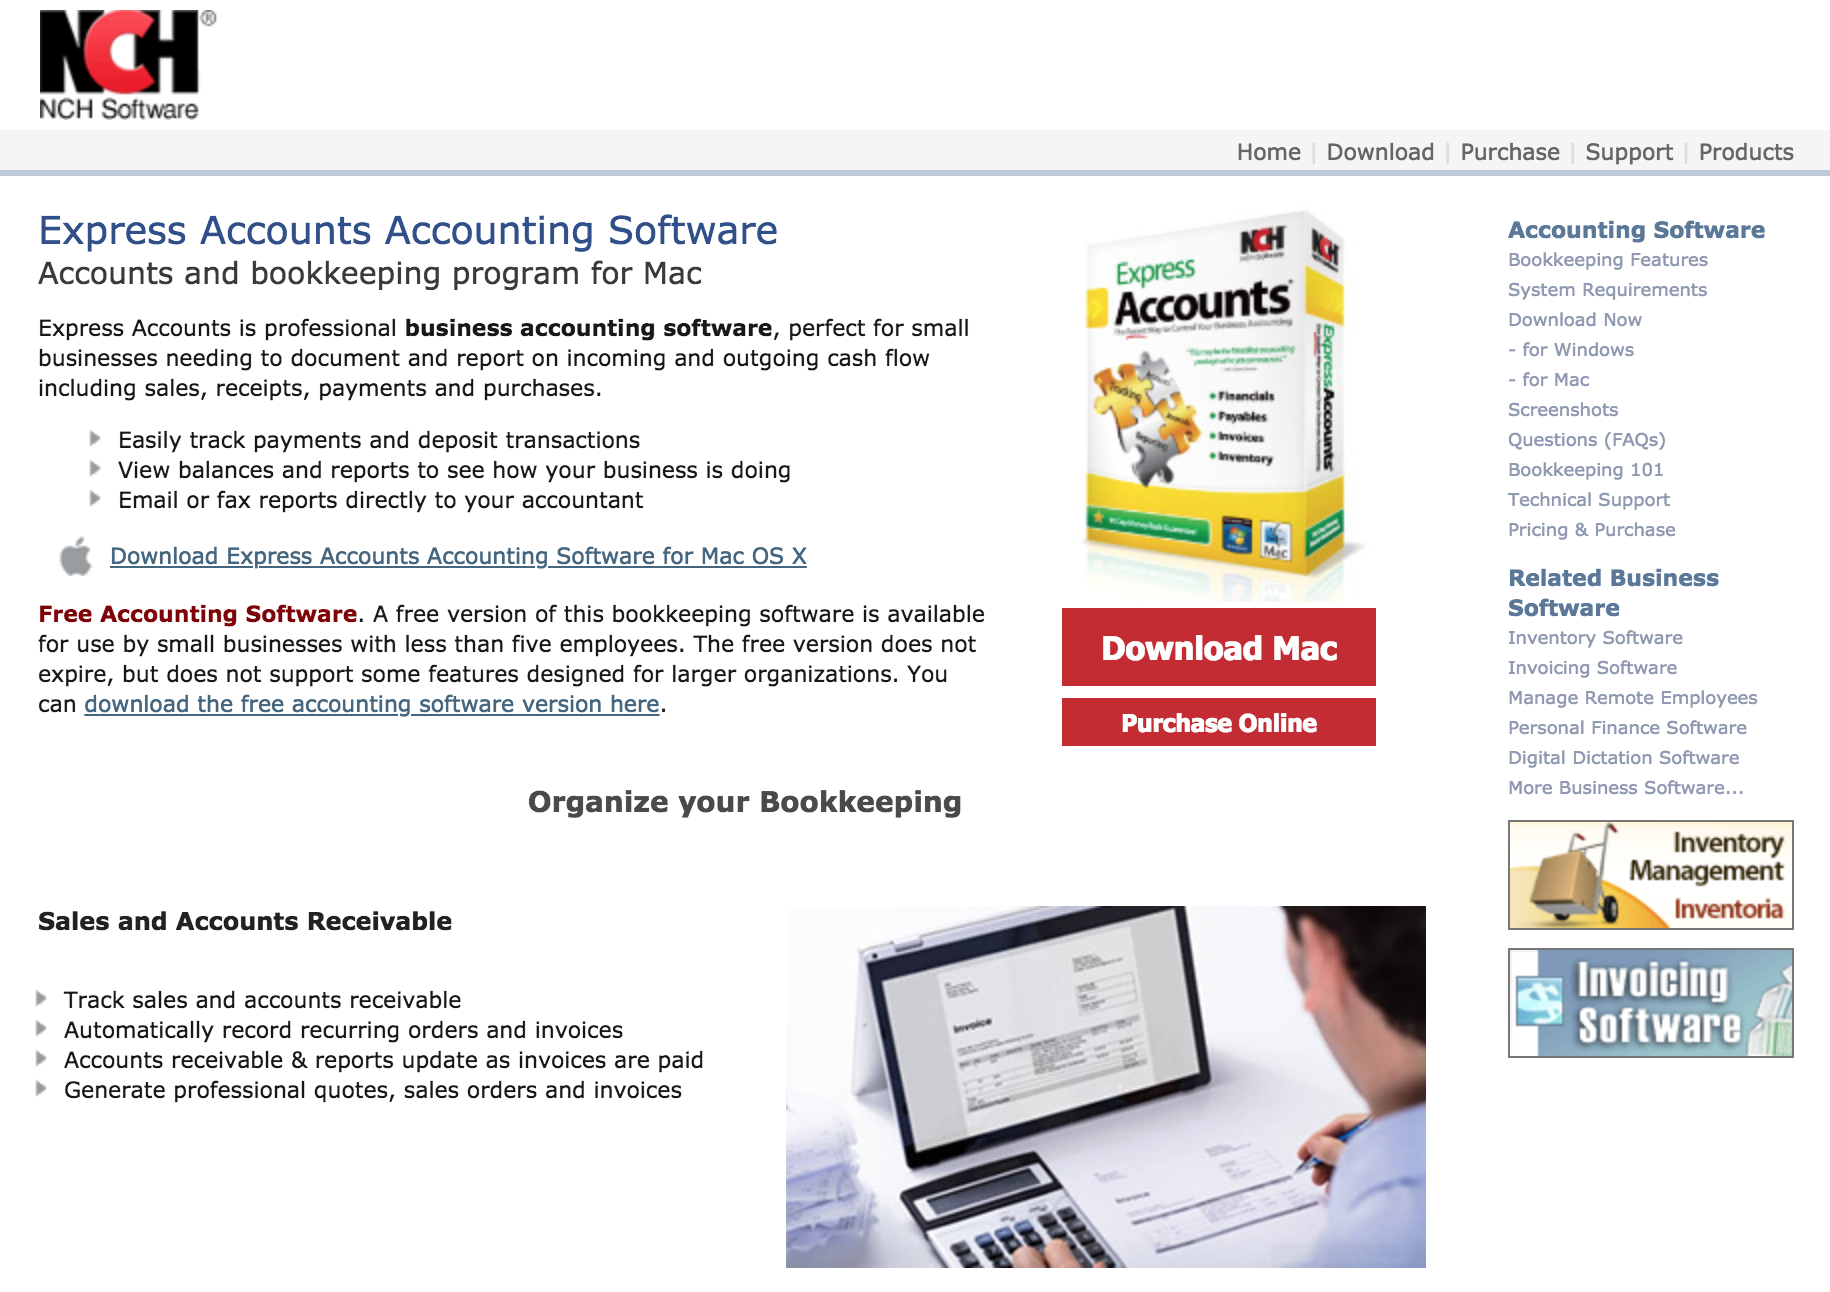 9 Open Source Or Free Accounting Software For Small Businesses